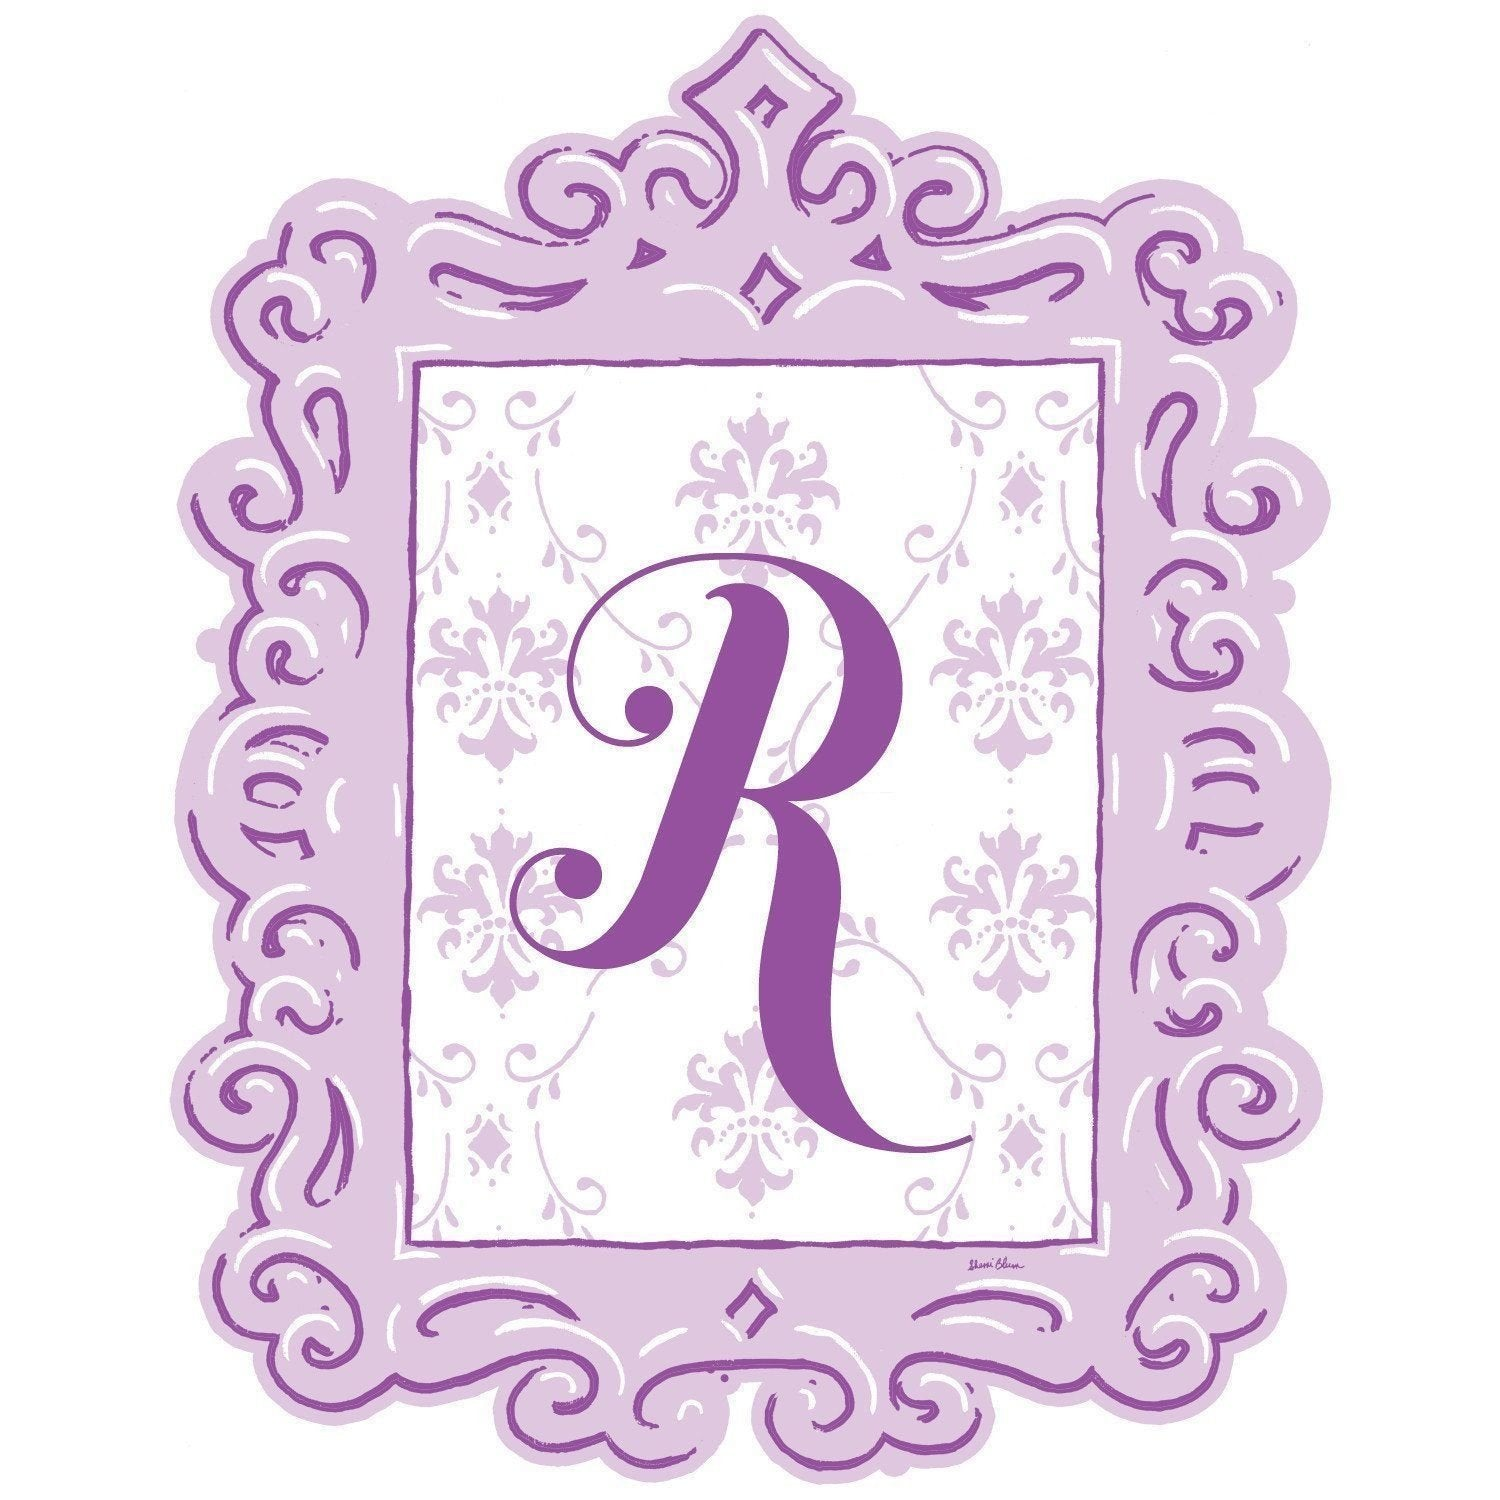 Framed Damask Monogram Wall Decal in Lavender-Decals-Default-Jack and Jill Boutique